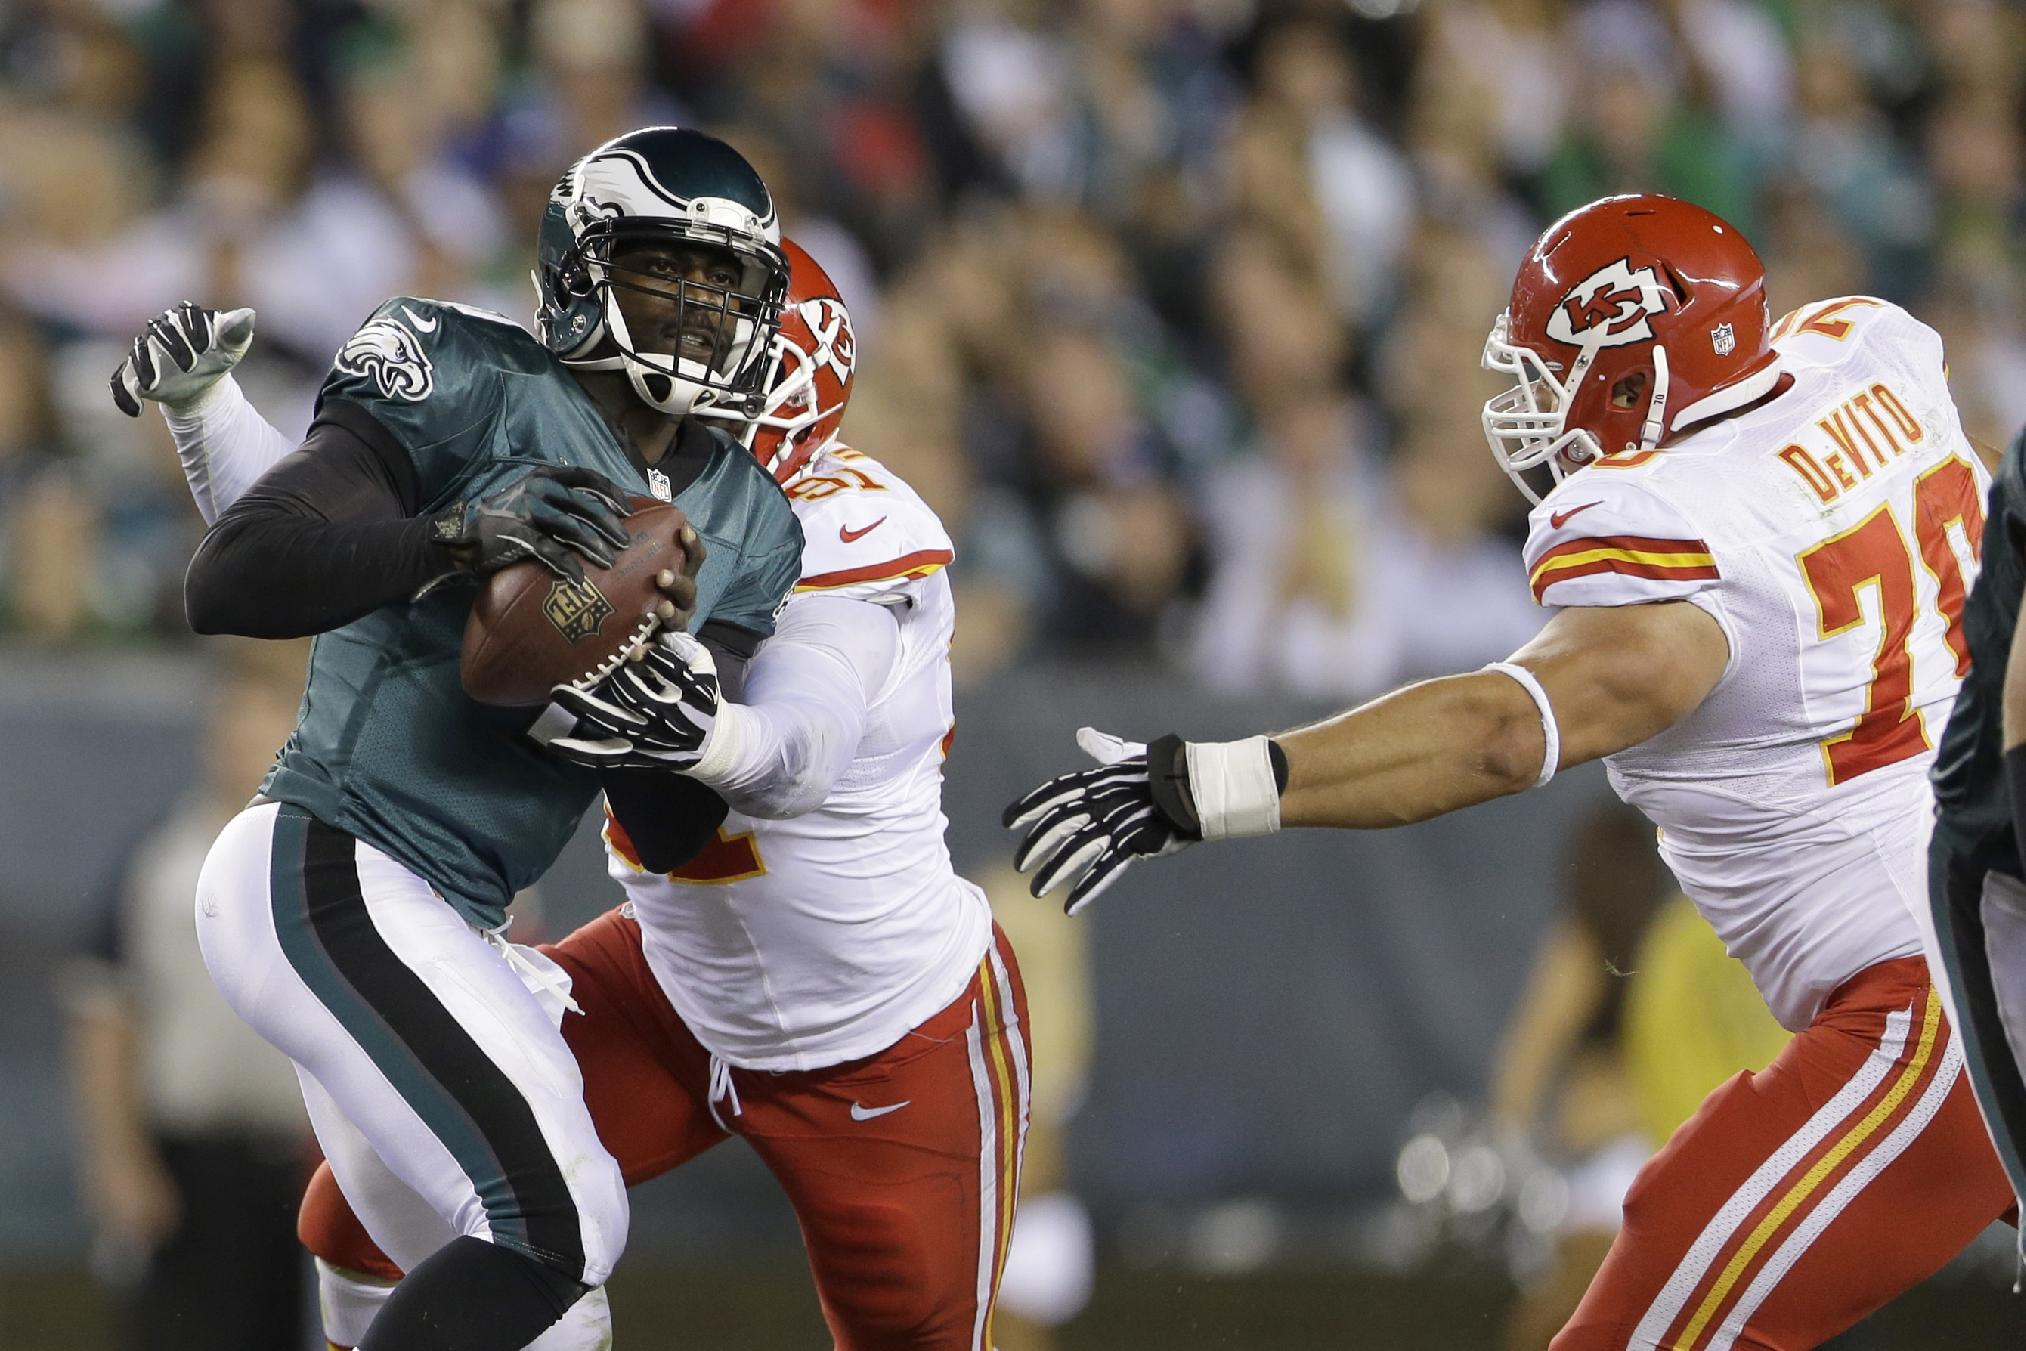 Hits keep on coming for QB Vick, Eagles